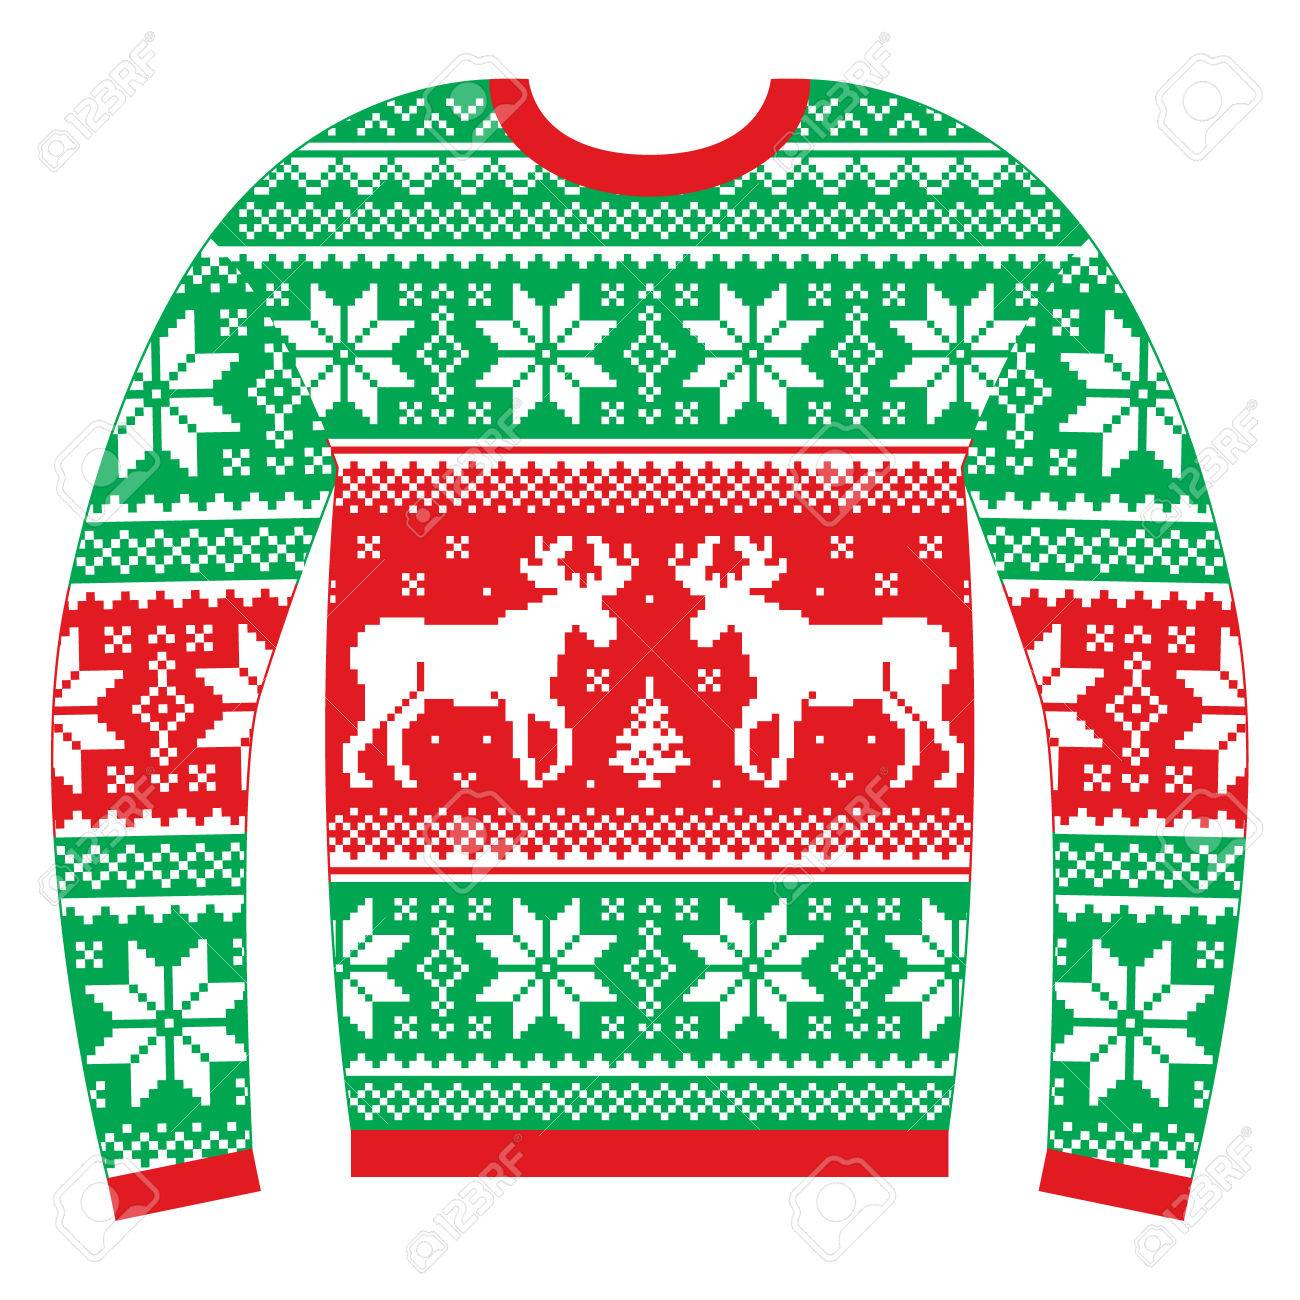 1621a4a5c Ugly Christmas jumper or sweater with reindeer and snowflakes red and green  pattern Stock Vector -